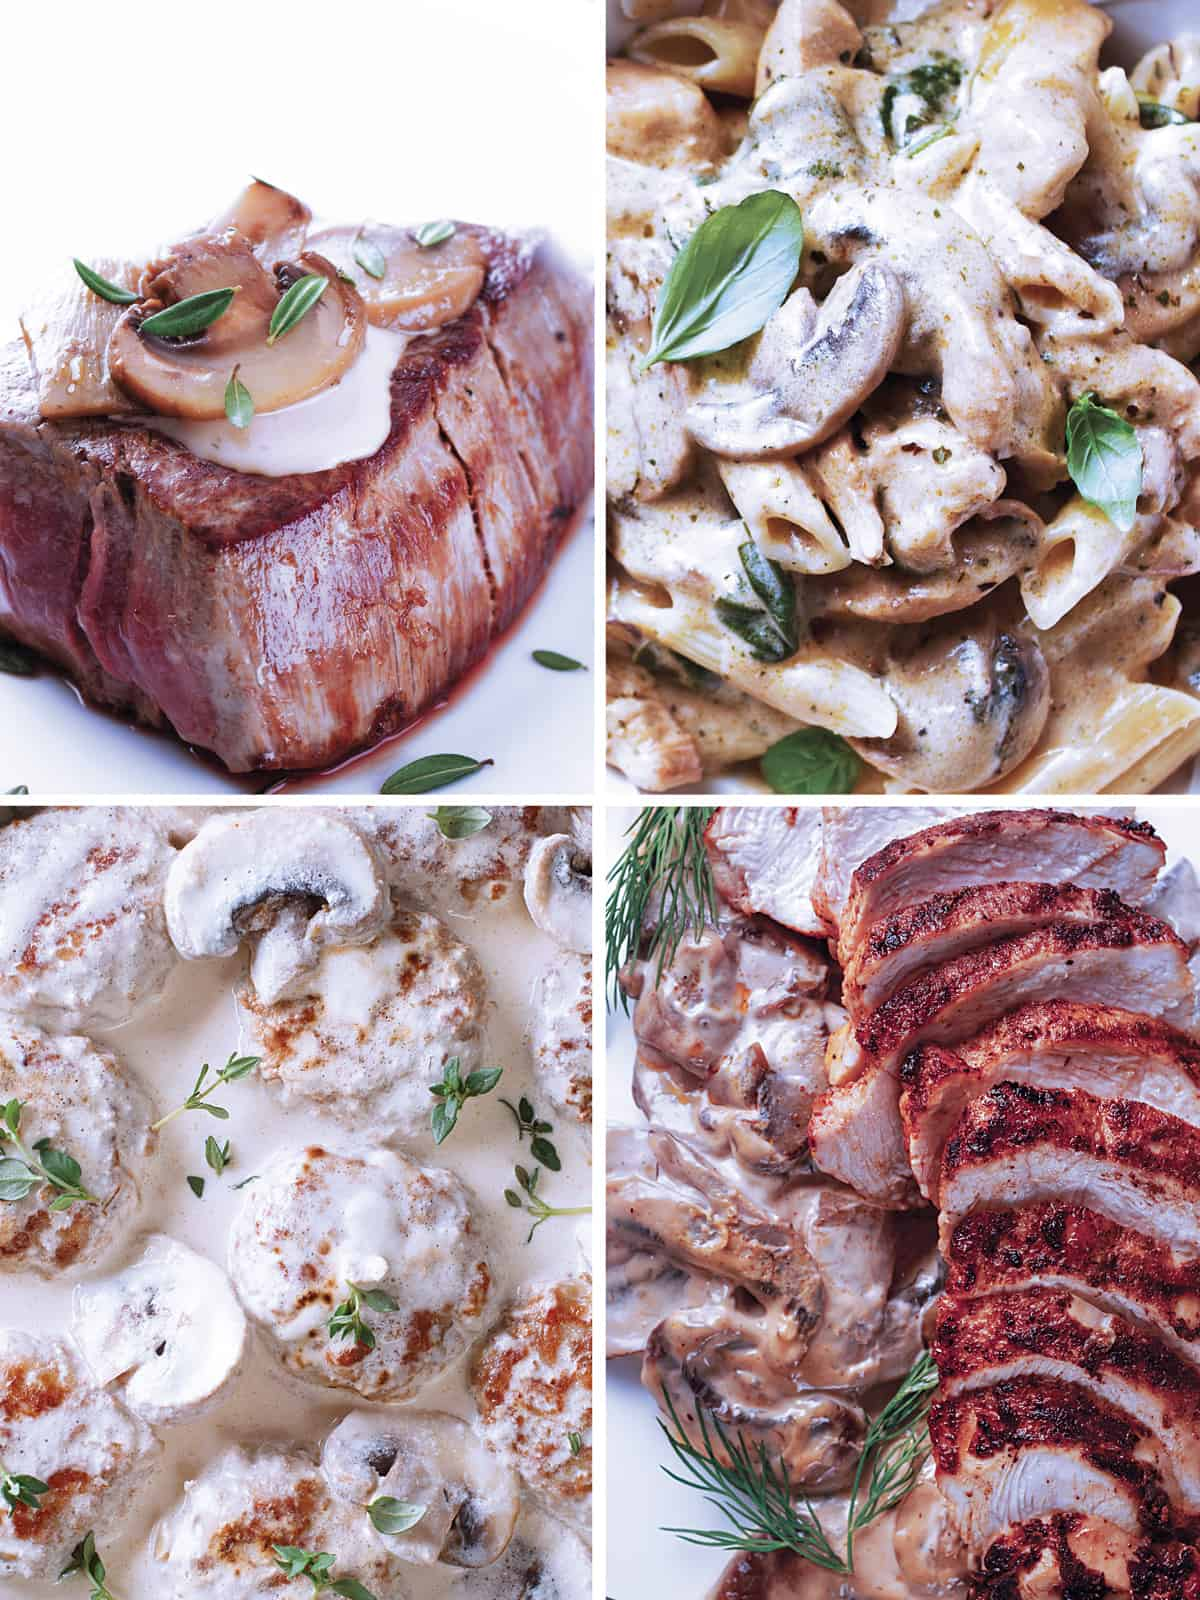 Top left: A steak with a mushroom, cream sauce and some thyme leaves on a plate. top right: Close up of penne pasta with cream sauce and herbs. Bottom left: Meatballs in creamy sauce. Bottom right: Grilled chicken and mushroom sauce.